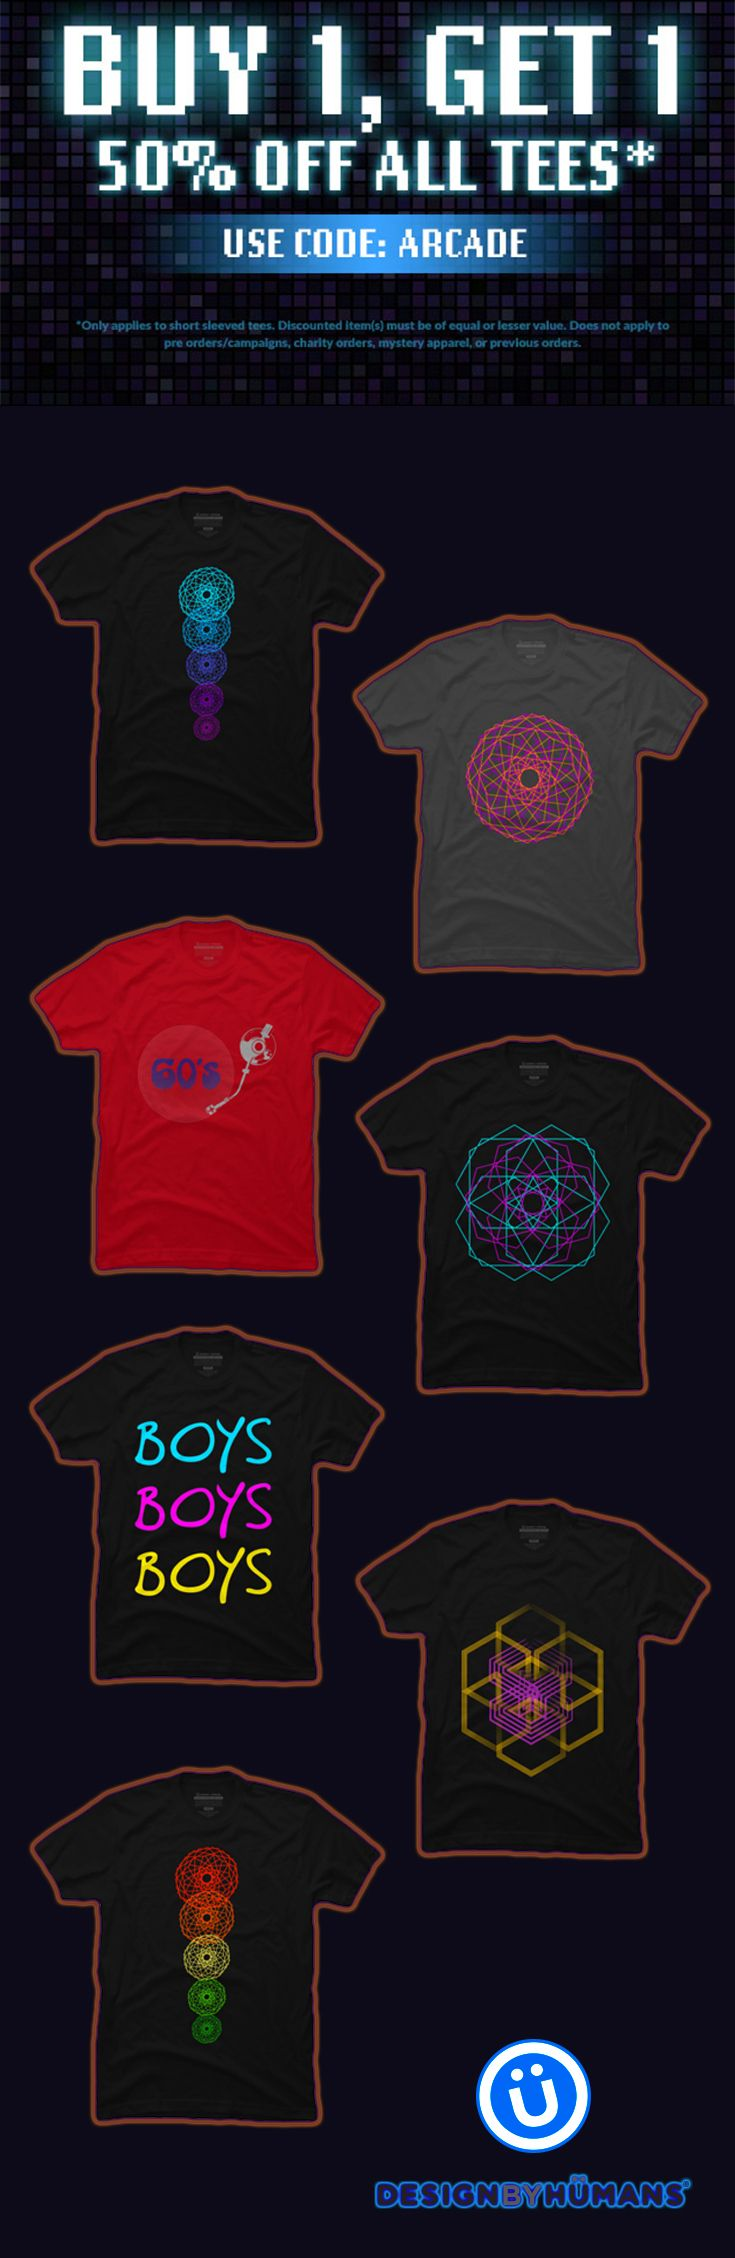 Buy 1 Get 1 50% OFF ALL T-Shirts by Scar Design.  Just use code : ARCADE.   #discount #sales #save #tshirts #fashion #style #family #art #shopping #online #desigbyhumans #skull #giftsforhim #giftsforher #onlineshopping #geometric #lgbt #music #1960 #modern #neon #space #scifi